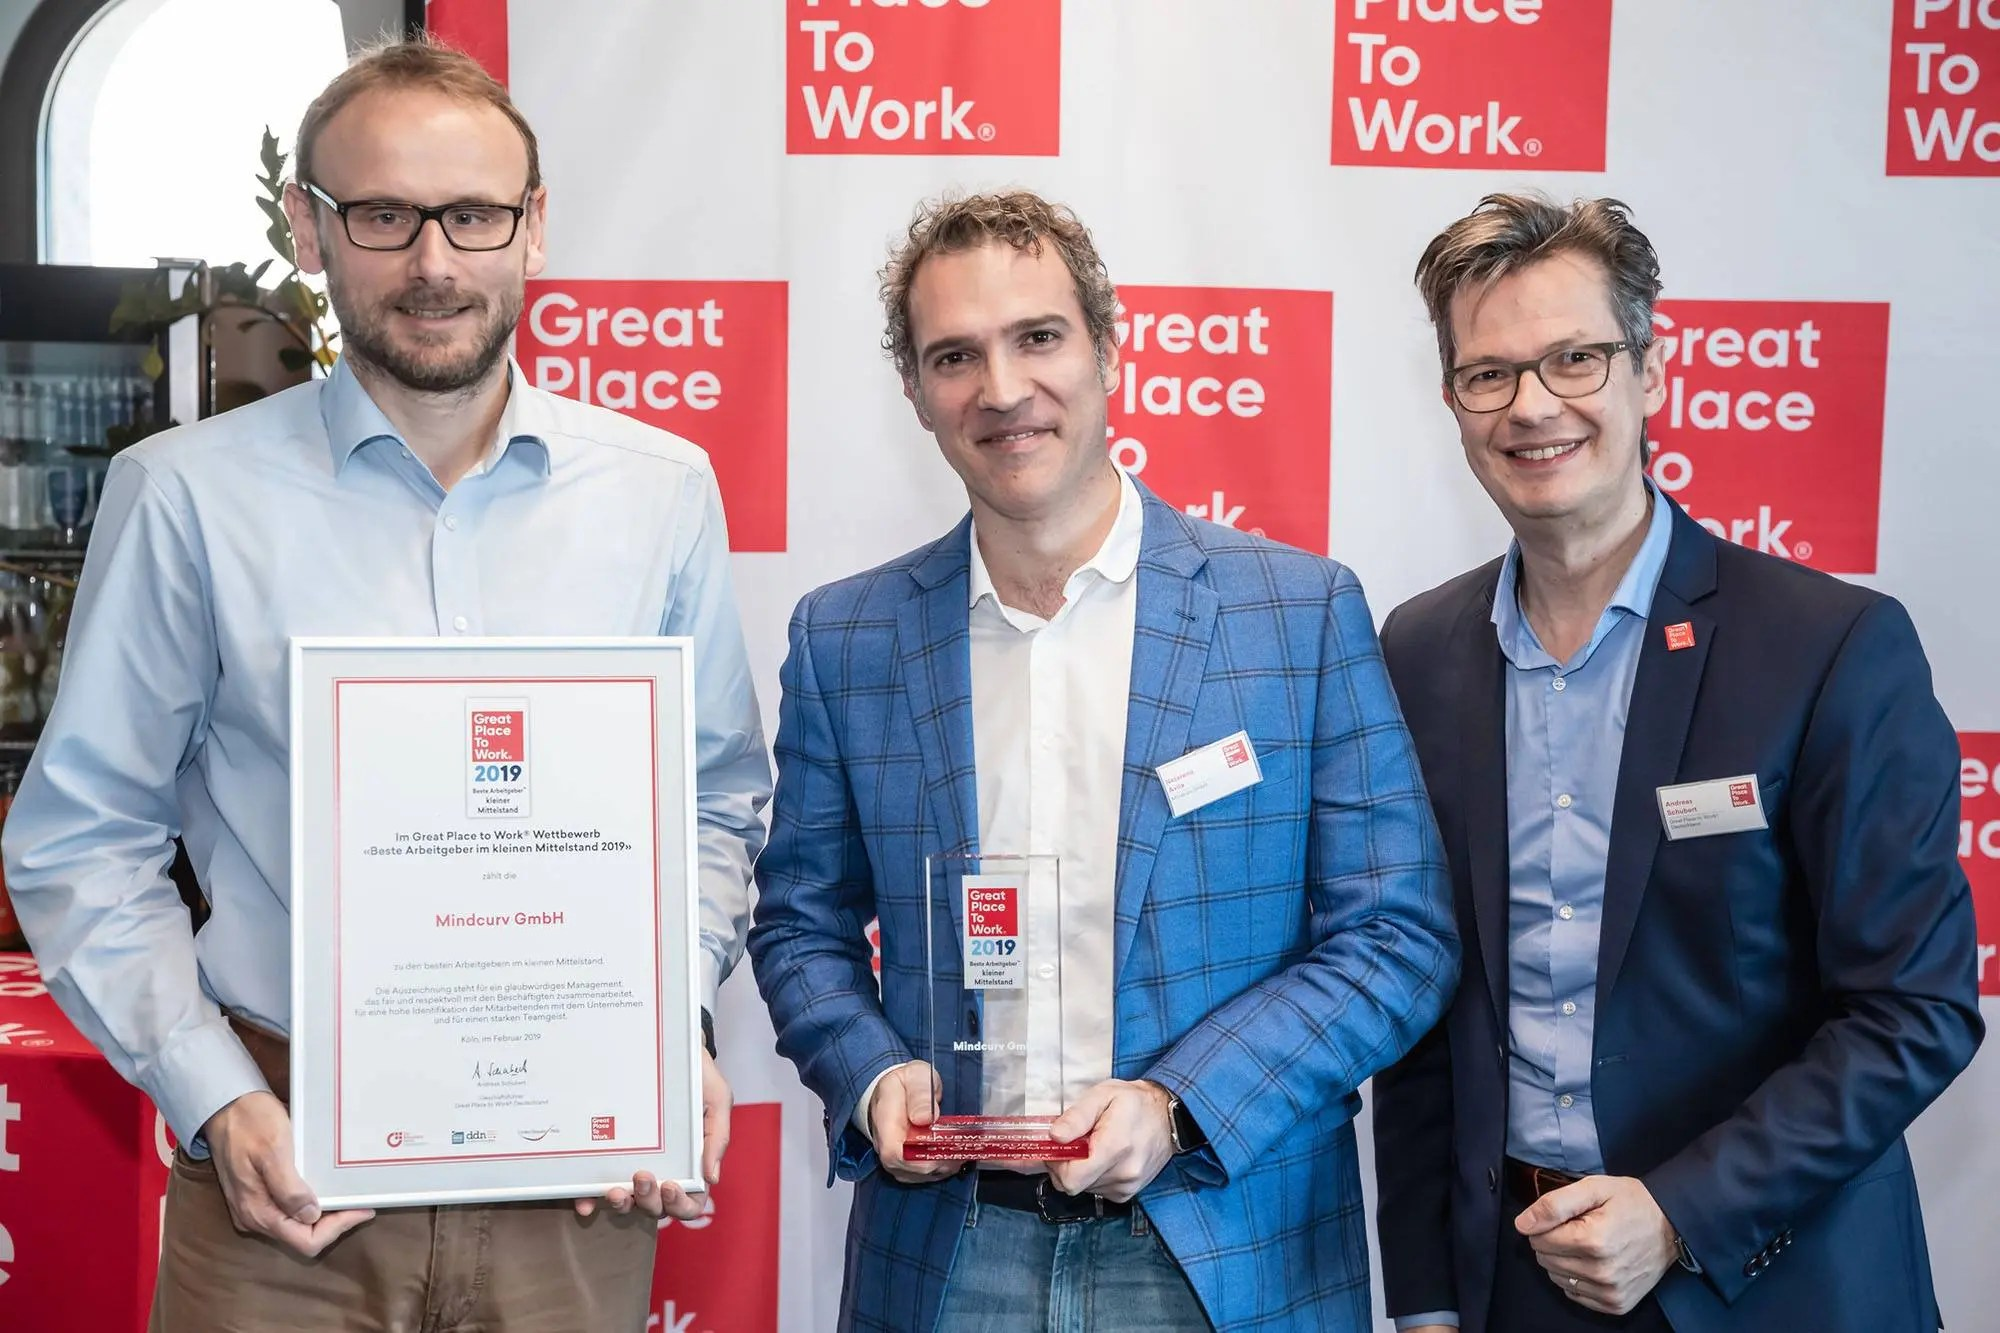 Ulf Gabel and Nazareno Avila holding certificate and award provided by Great Place to Work representative for Mindcurv Germany